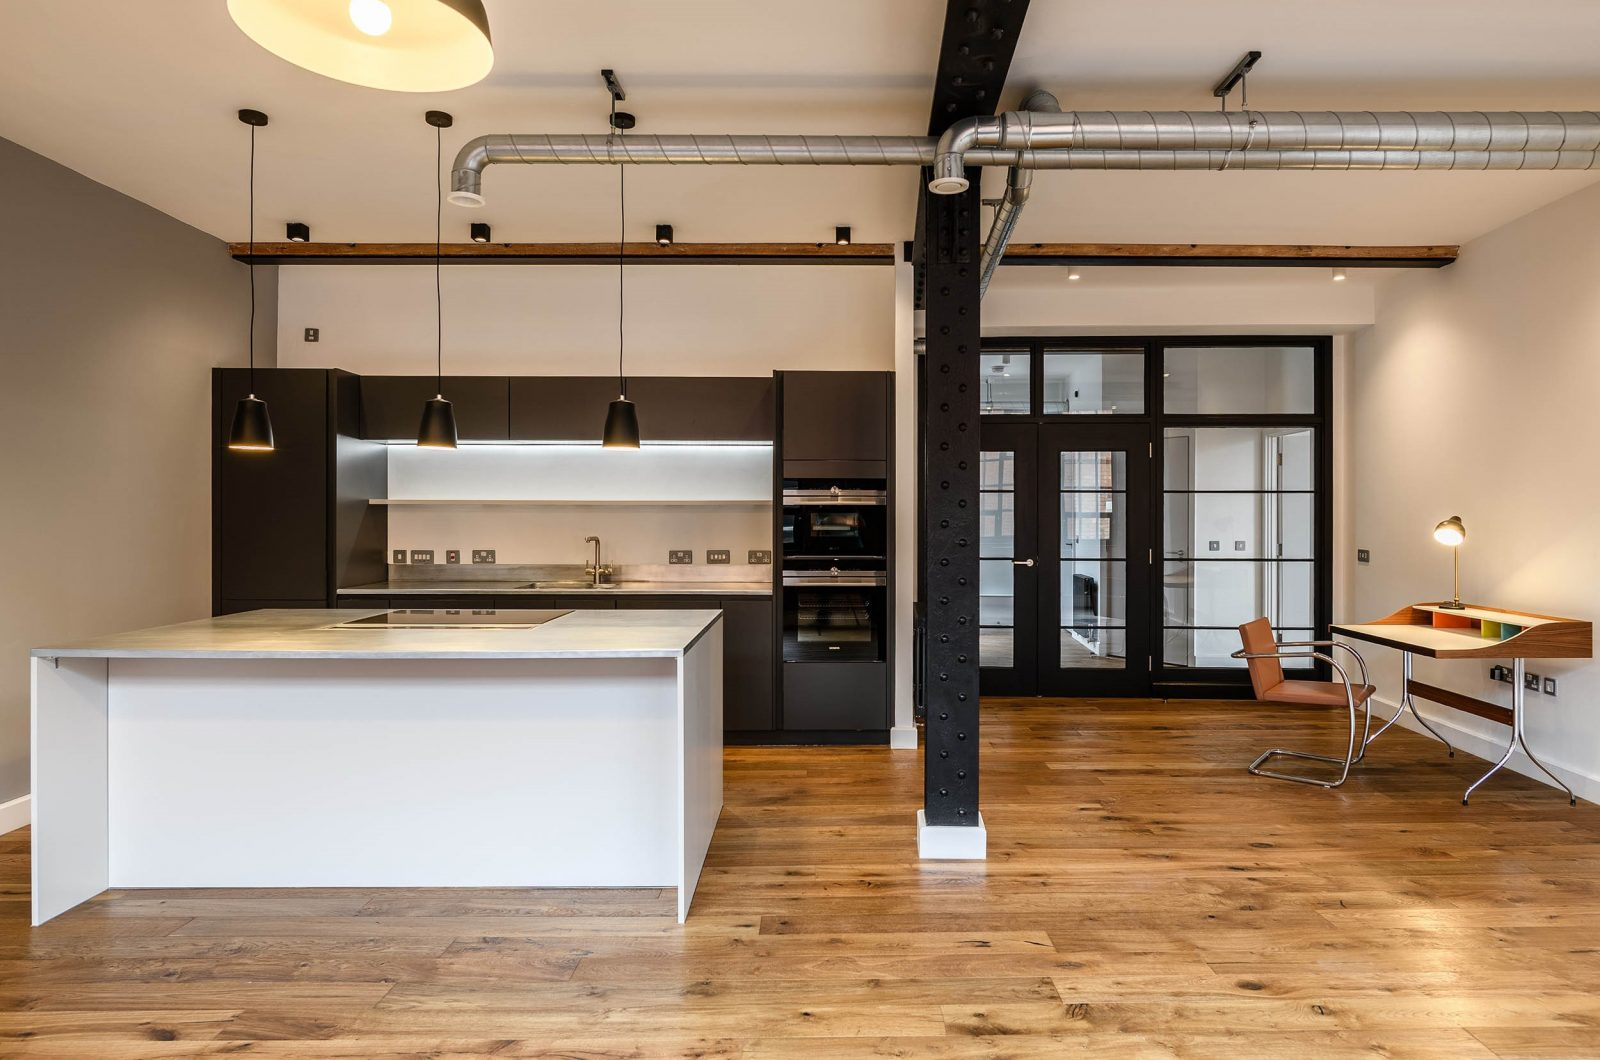 LIV Projekt modern black kitchen with a large island below 3 black pendant lights in an industrial style room